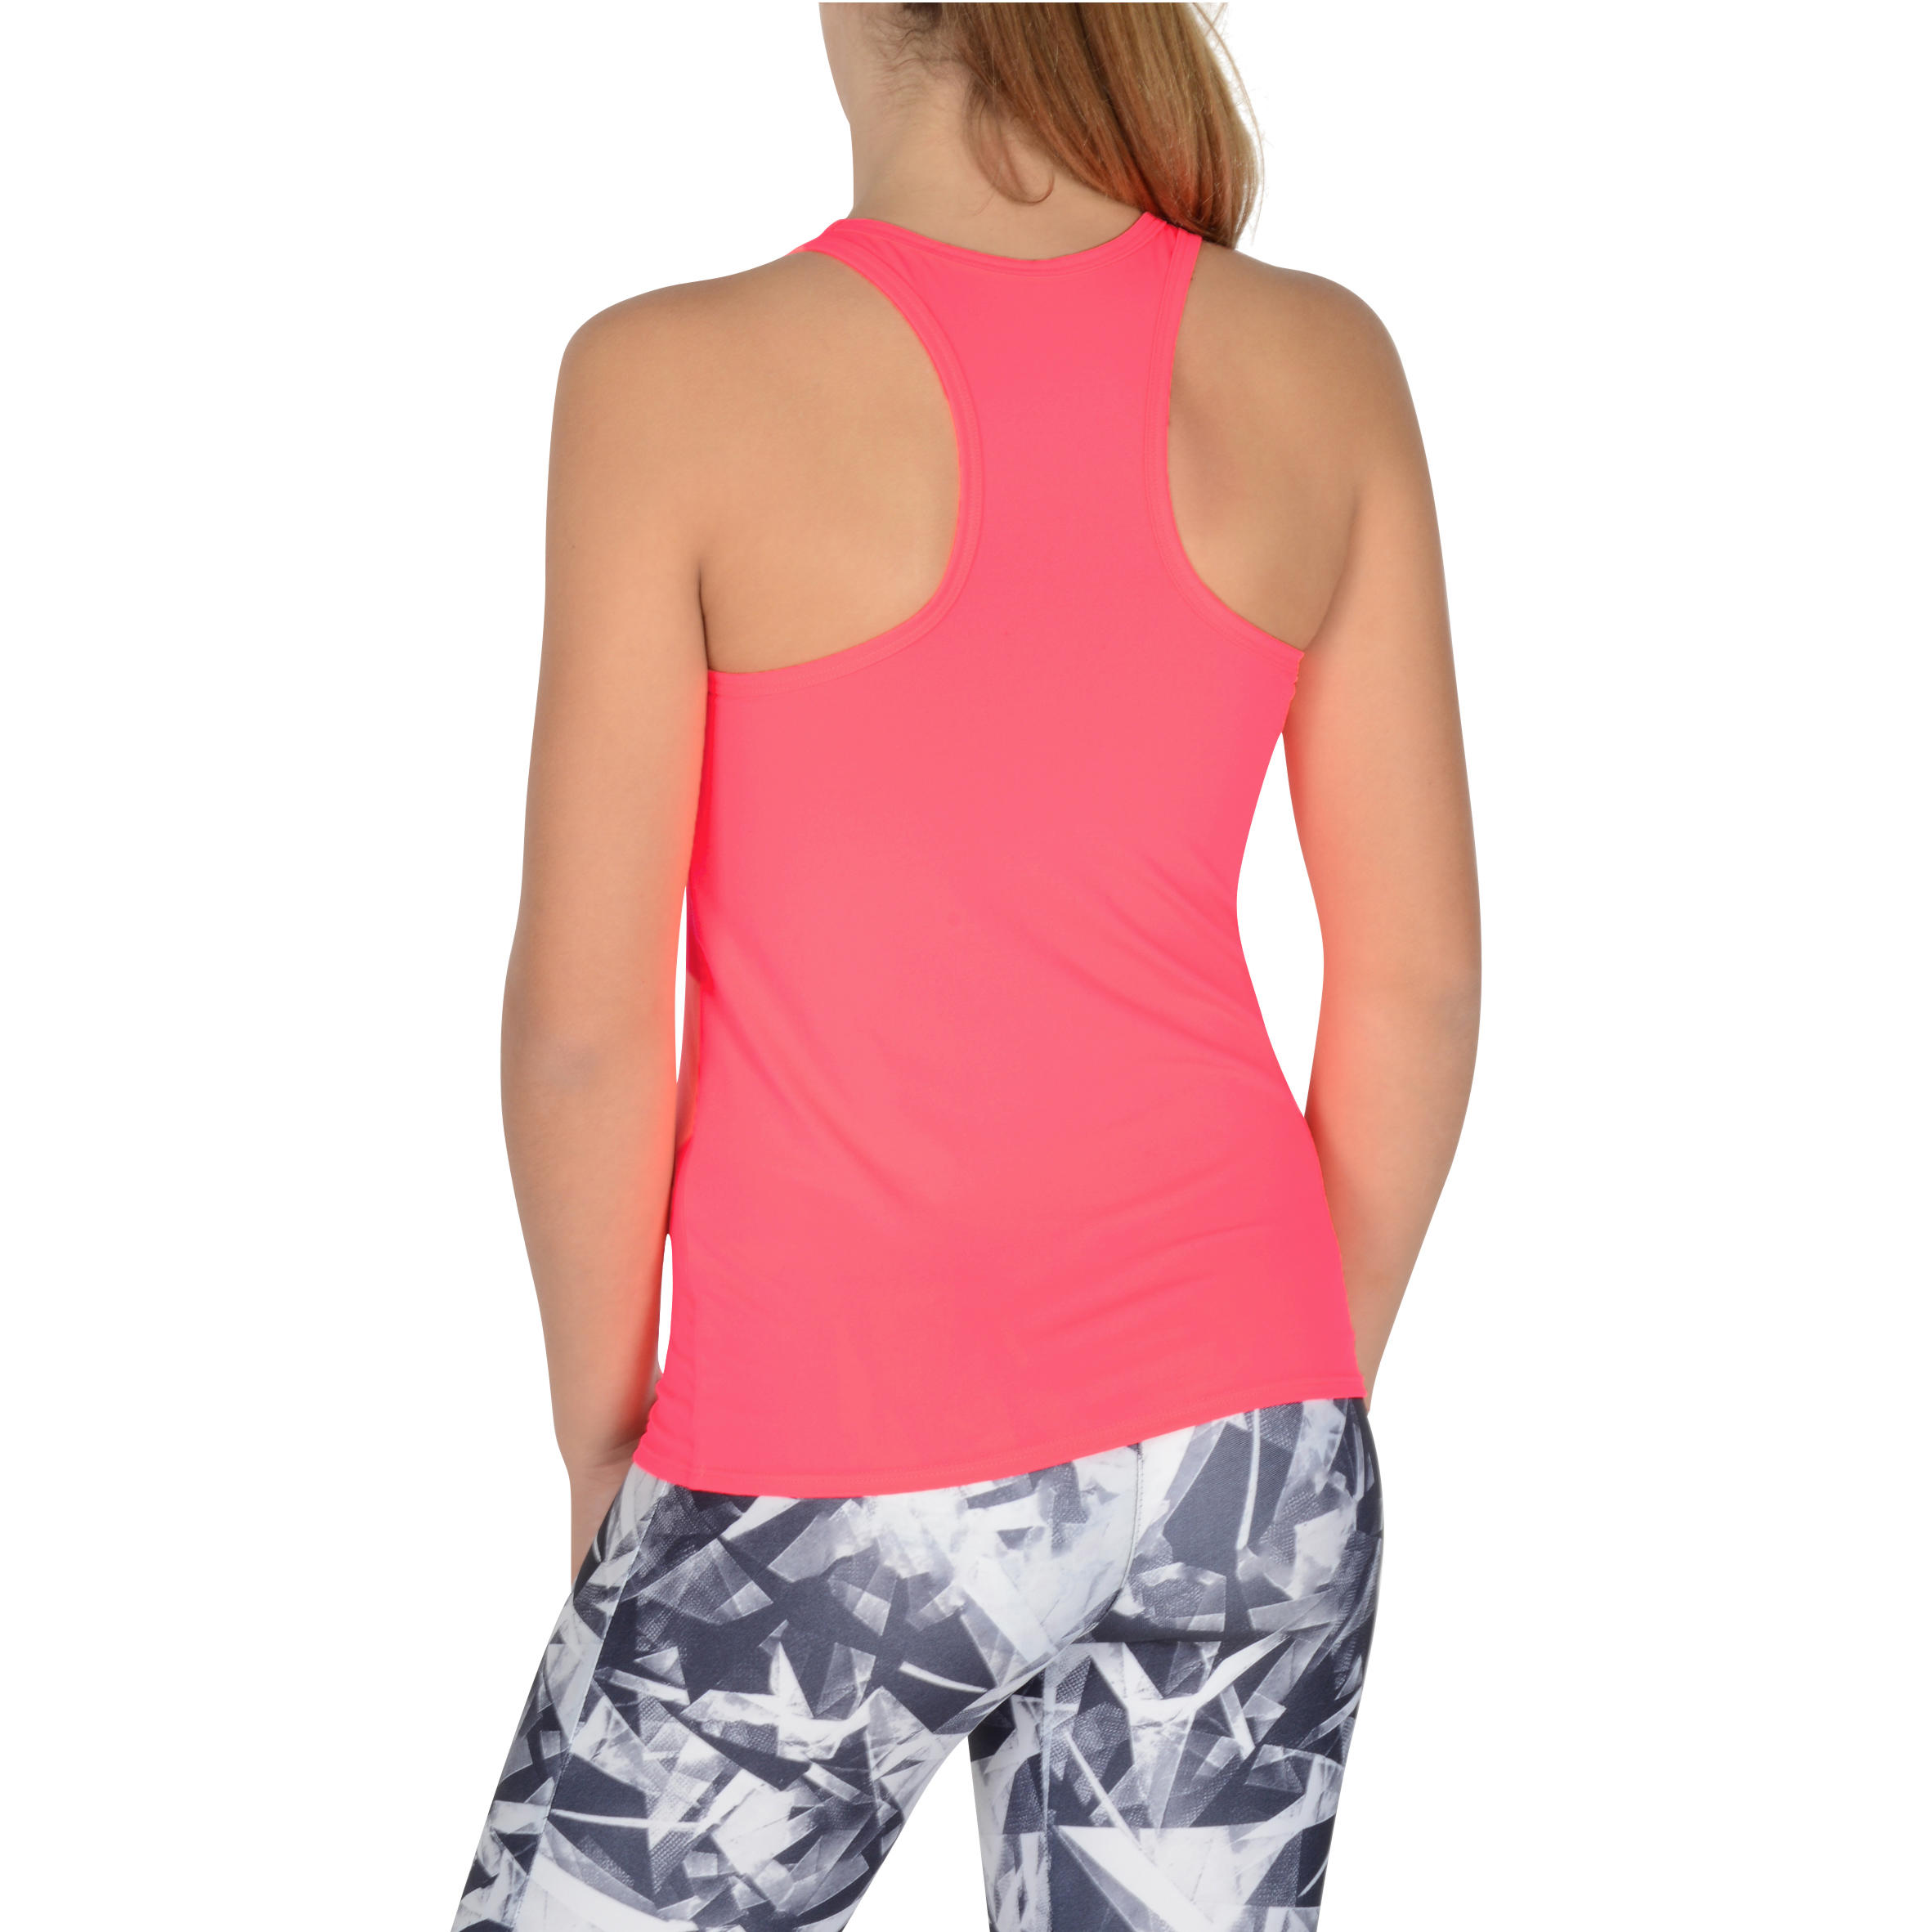 S900 My Little Top Girls' Gym Tank Top - Pink